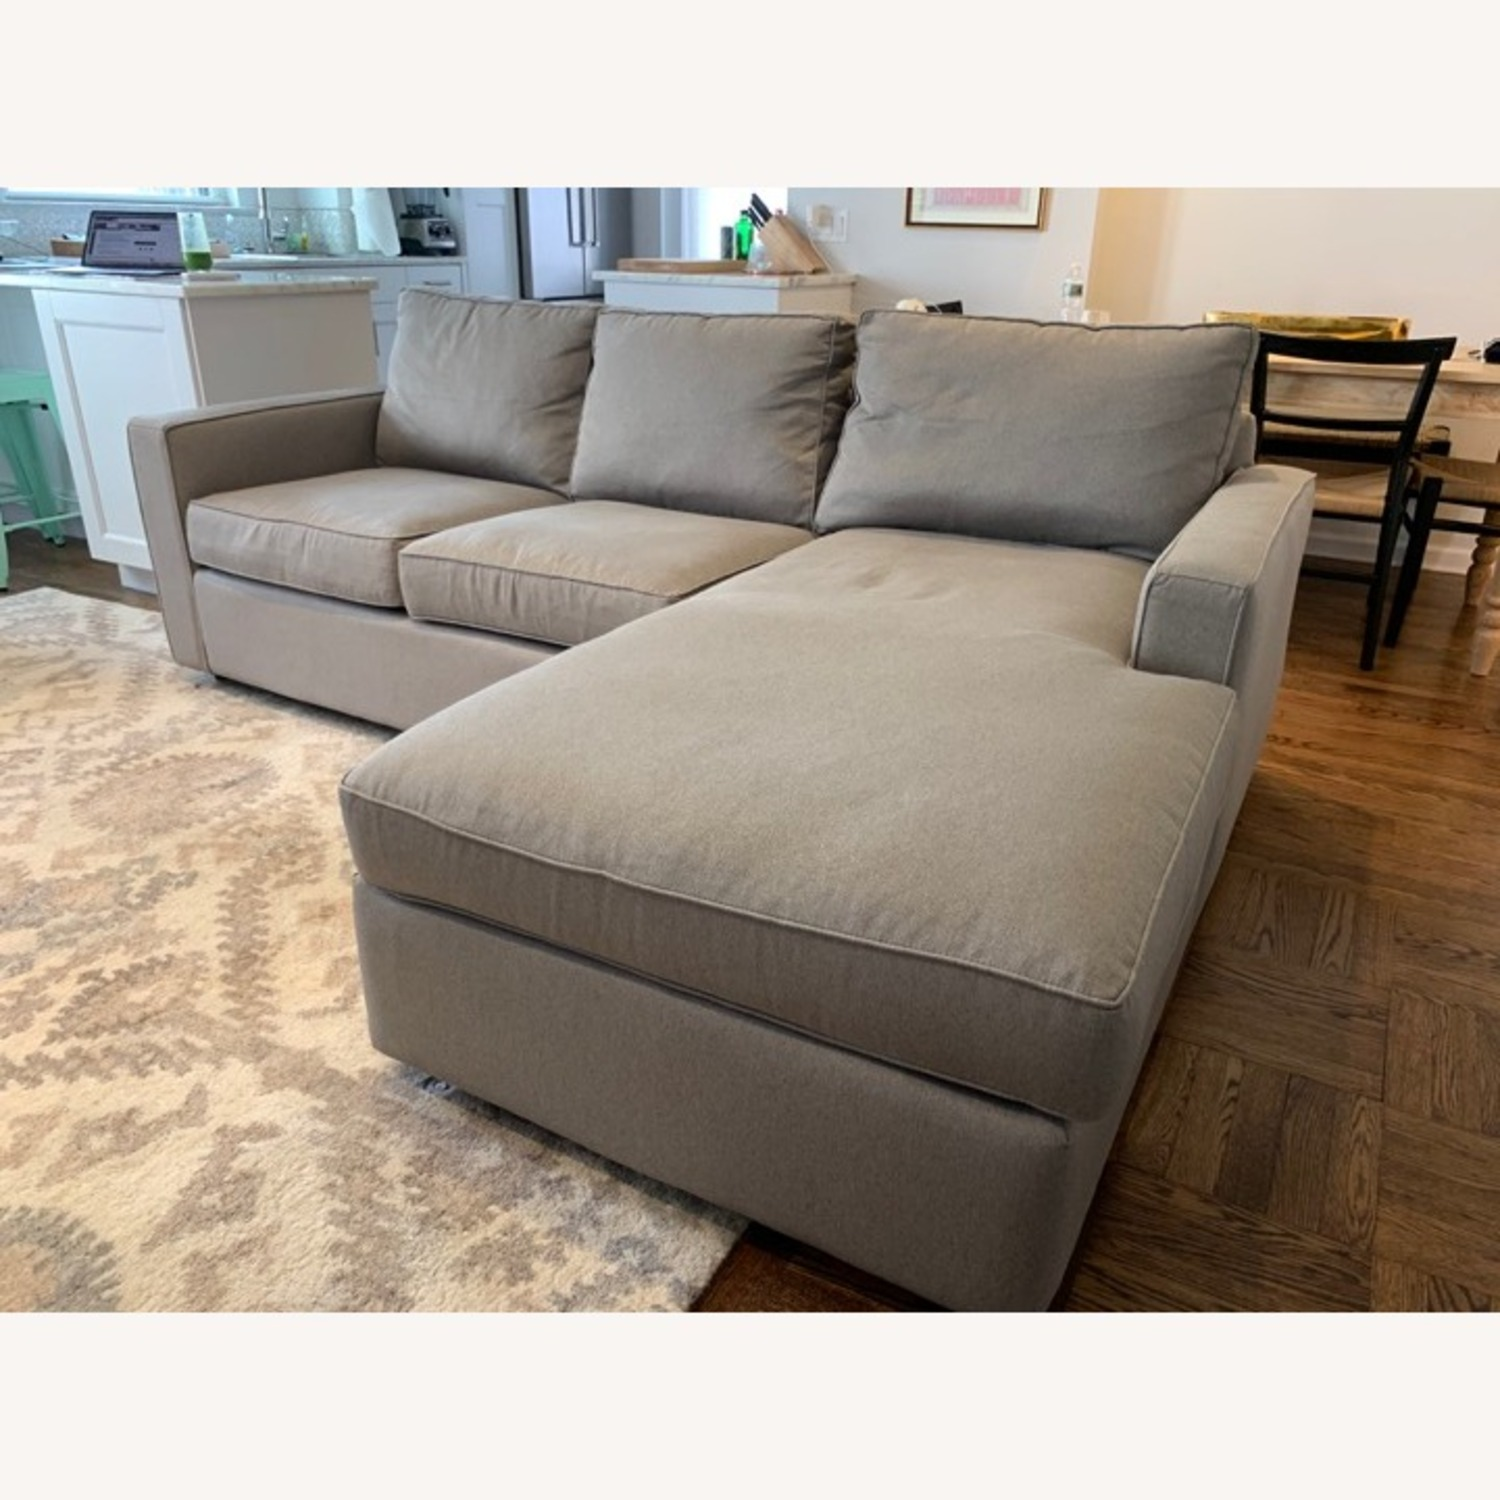 Room & Board York Sofa with Chaise - image-2